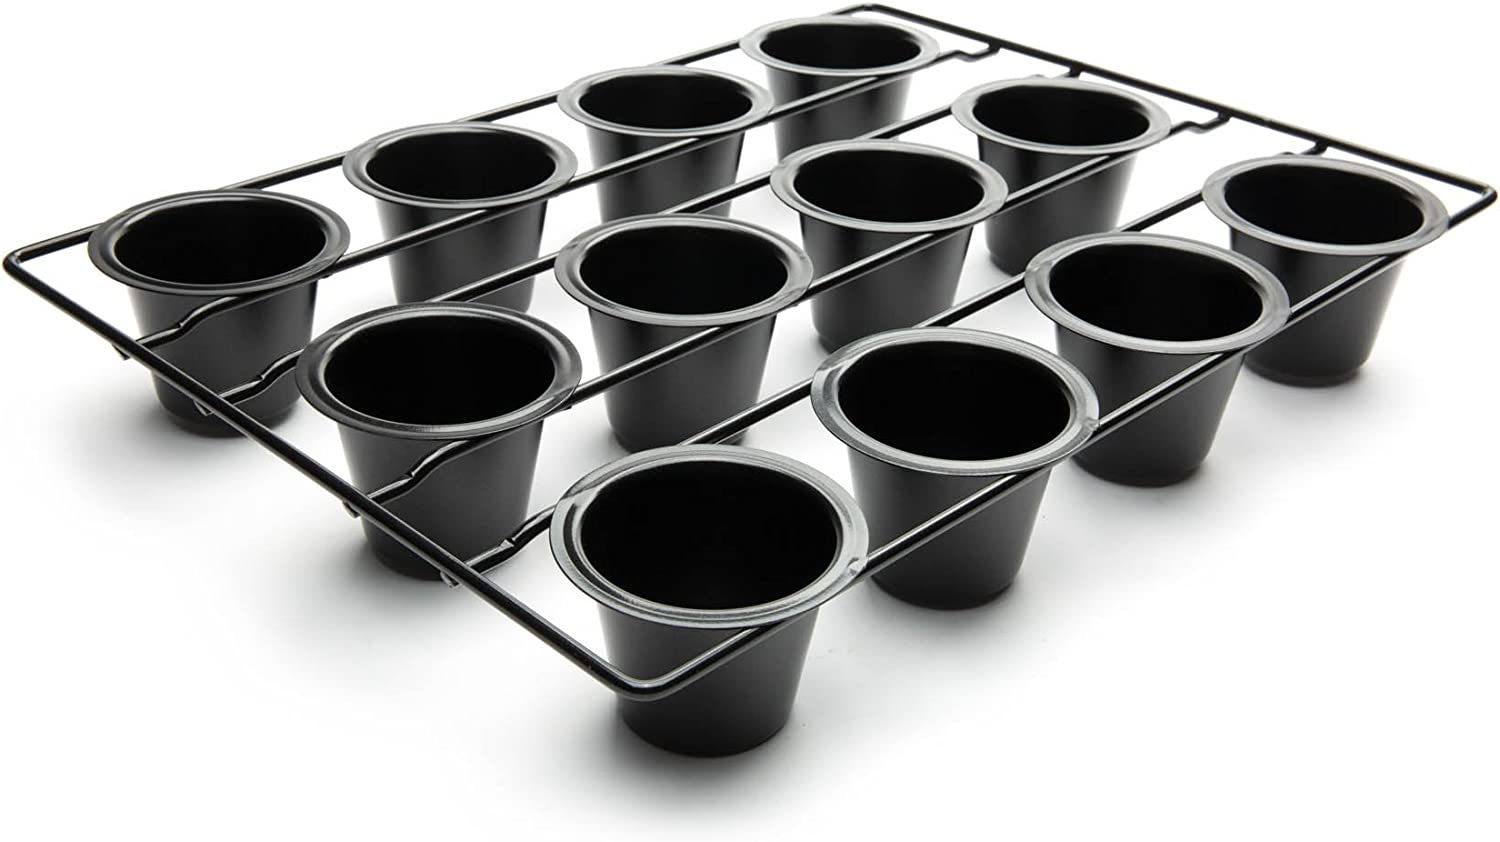 Amazon Com Fox Run 4756 Linking Mini Popover Pan Carbon Steel Non Stick 12 Cups Baking Dishes Kitchen Dining